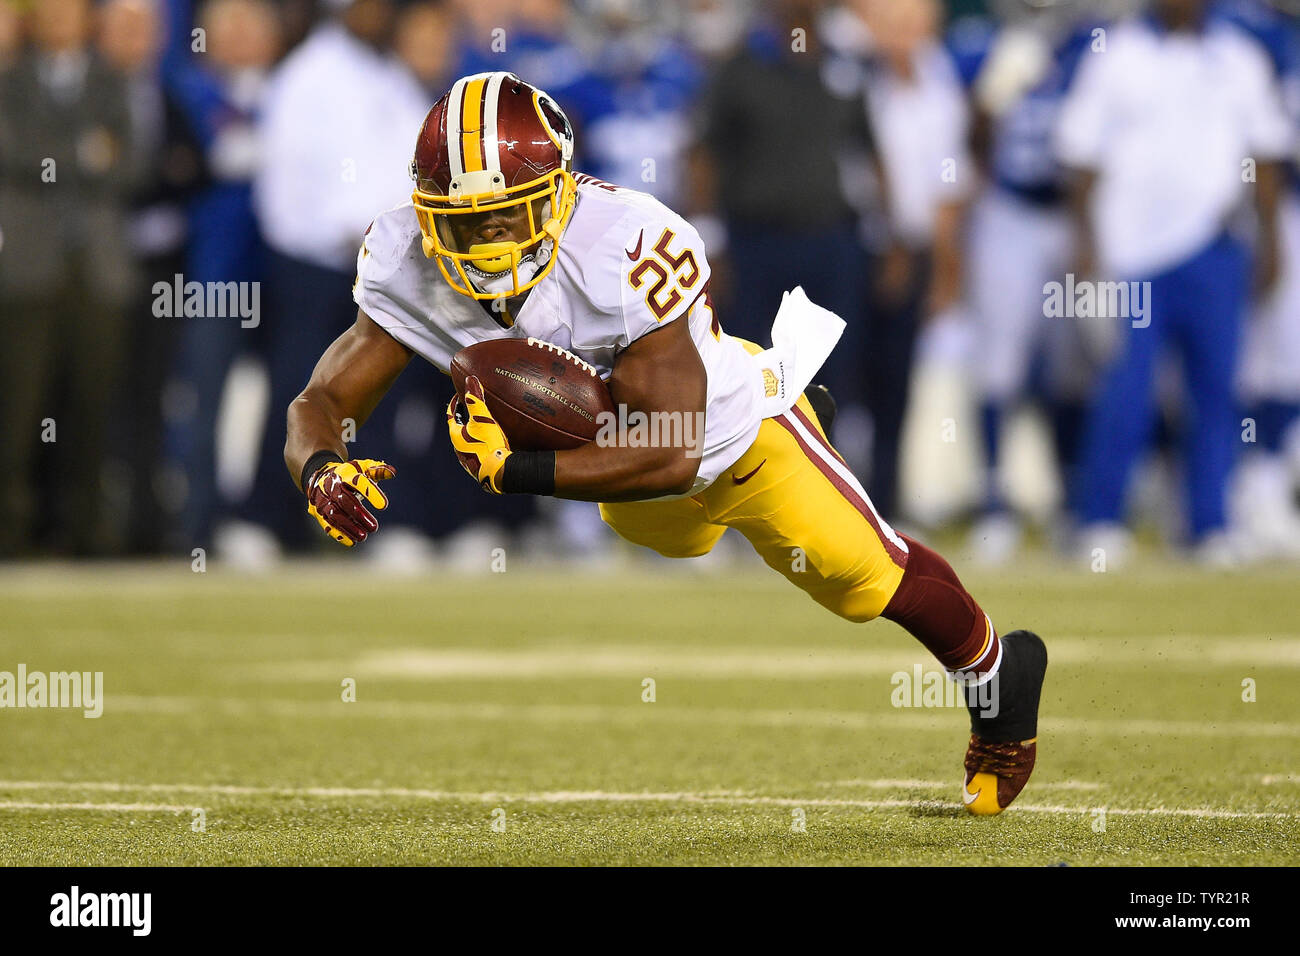 Kane Thompson High Resolution Stock Photography and Images - Alamy